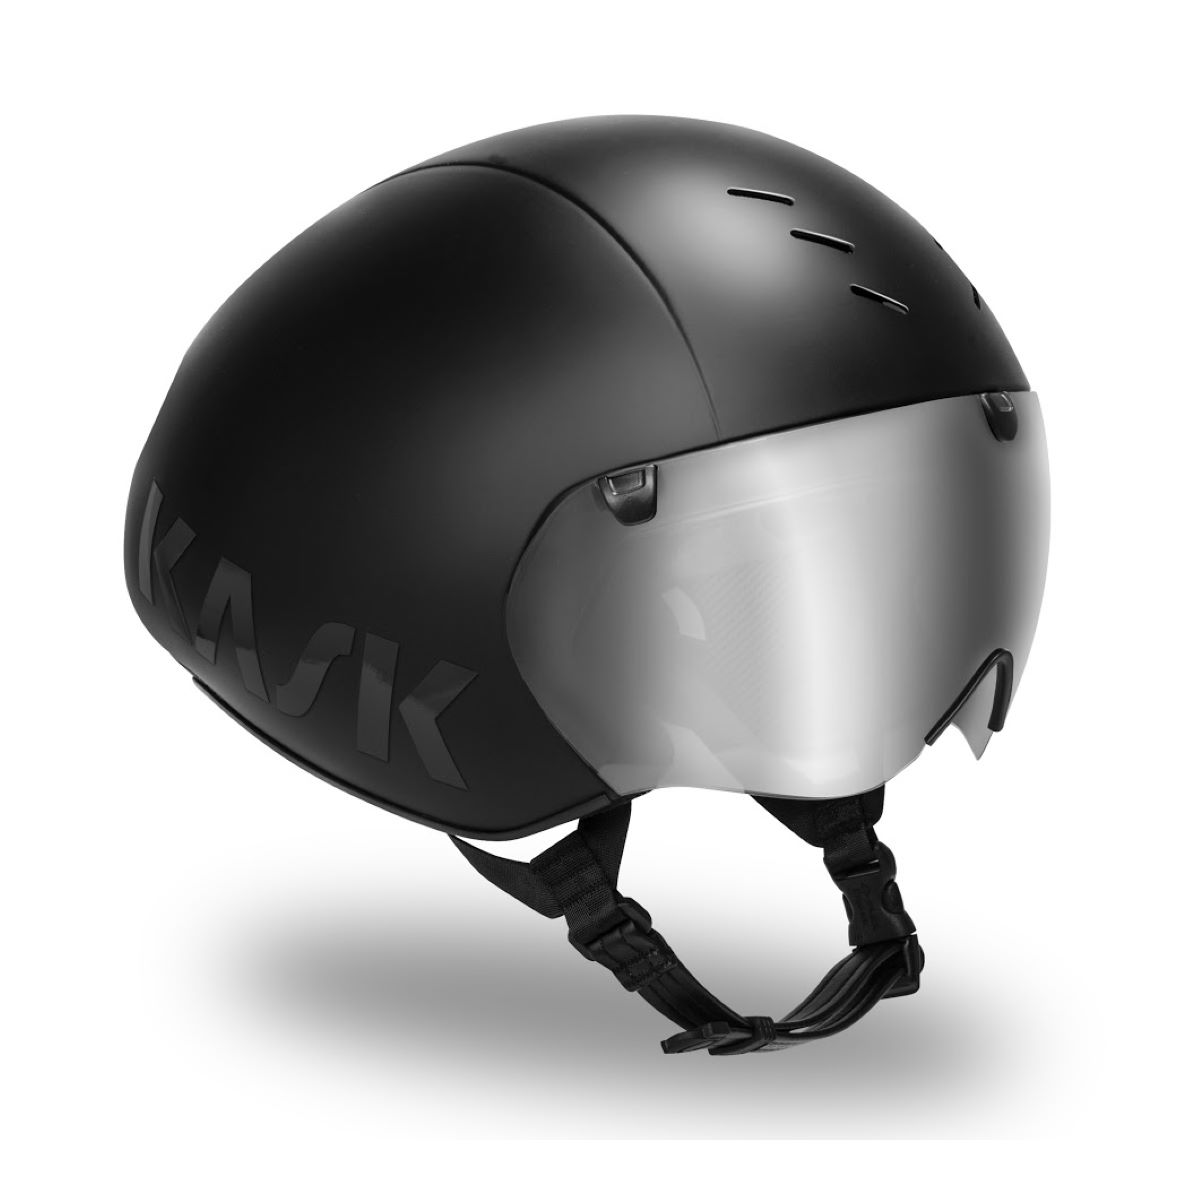 Casque Kask Bambino Pro (finition mate) - Large Noir mat Casques